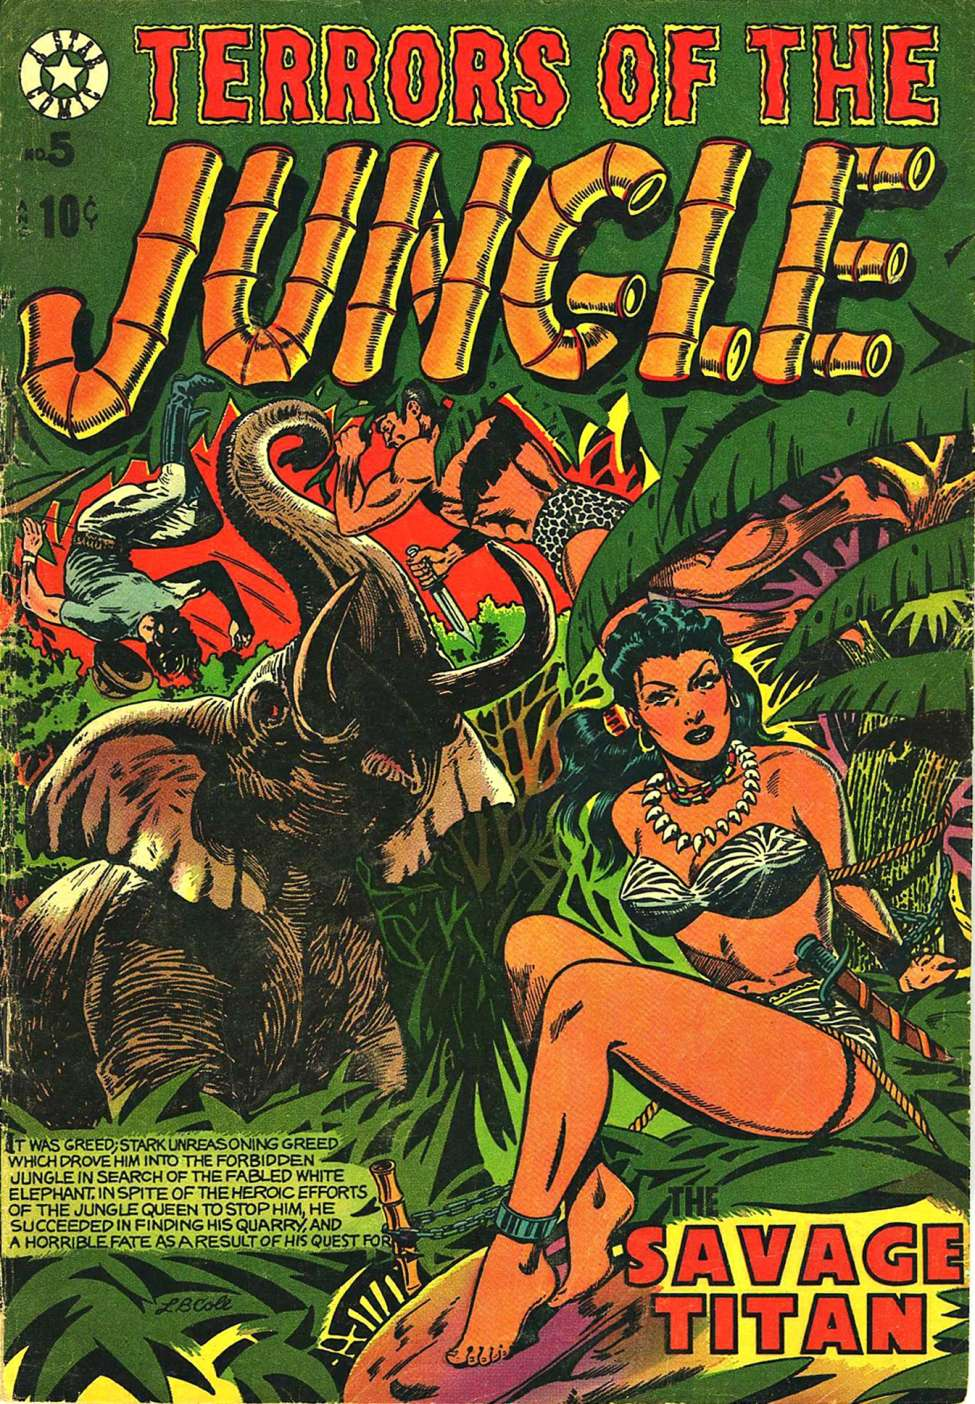 Comic Book Cover For Terrors of the Jungle #5